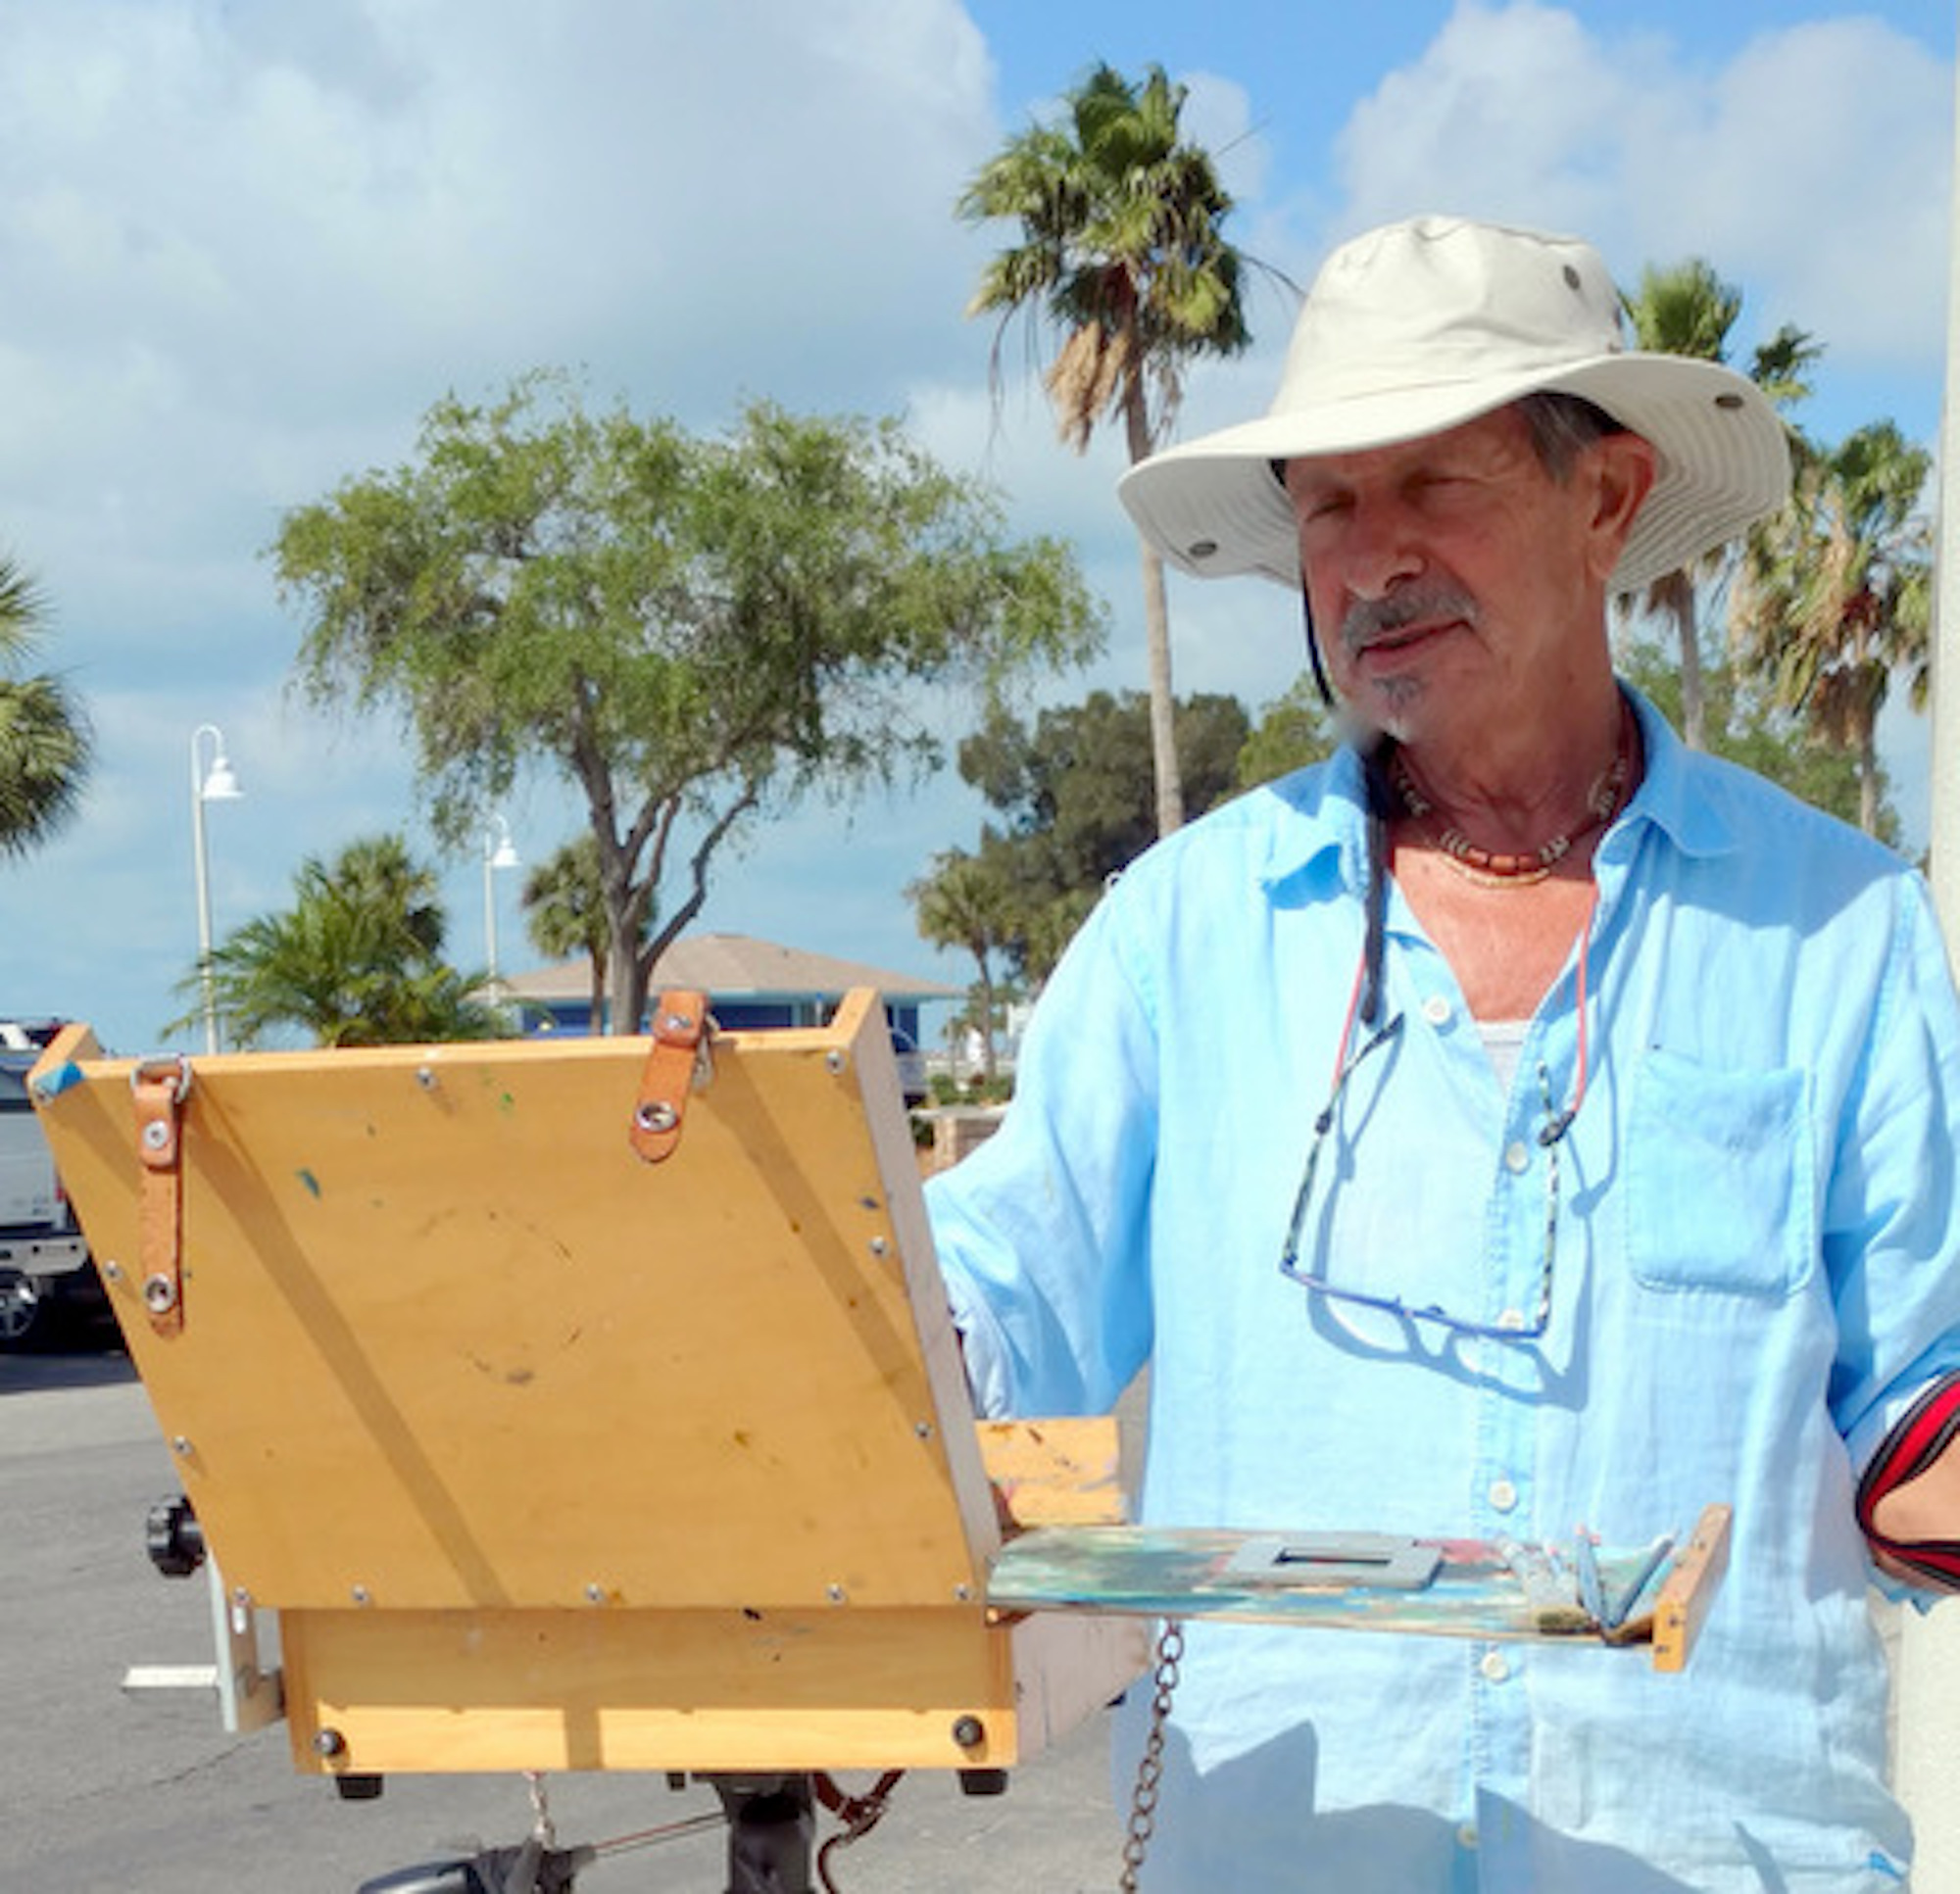 A man in a blue shirt and white hat painting outside.